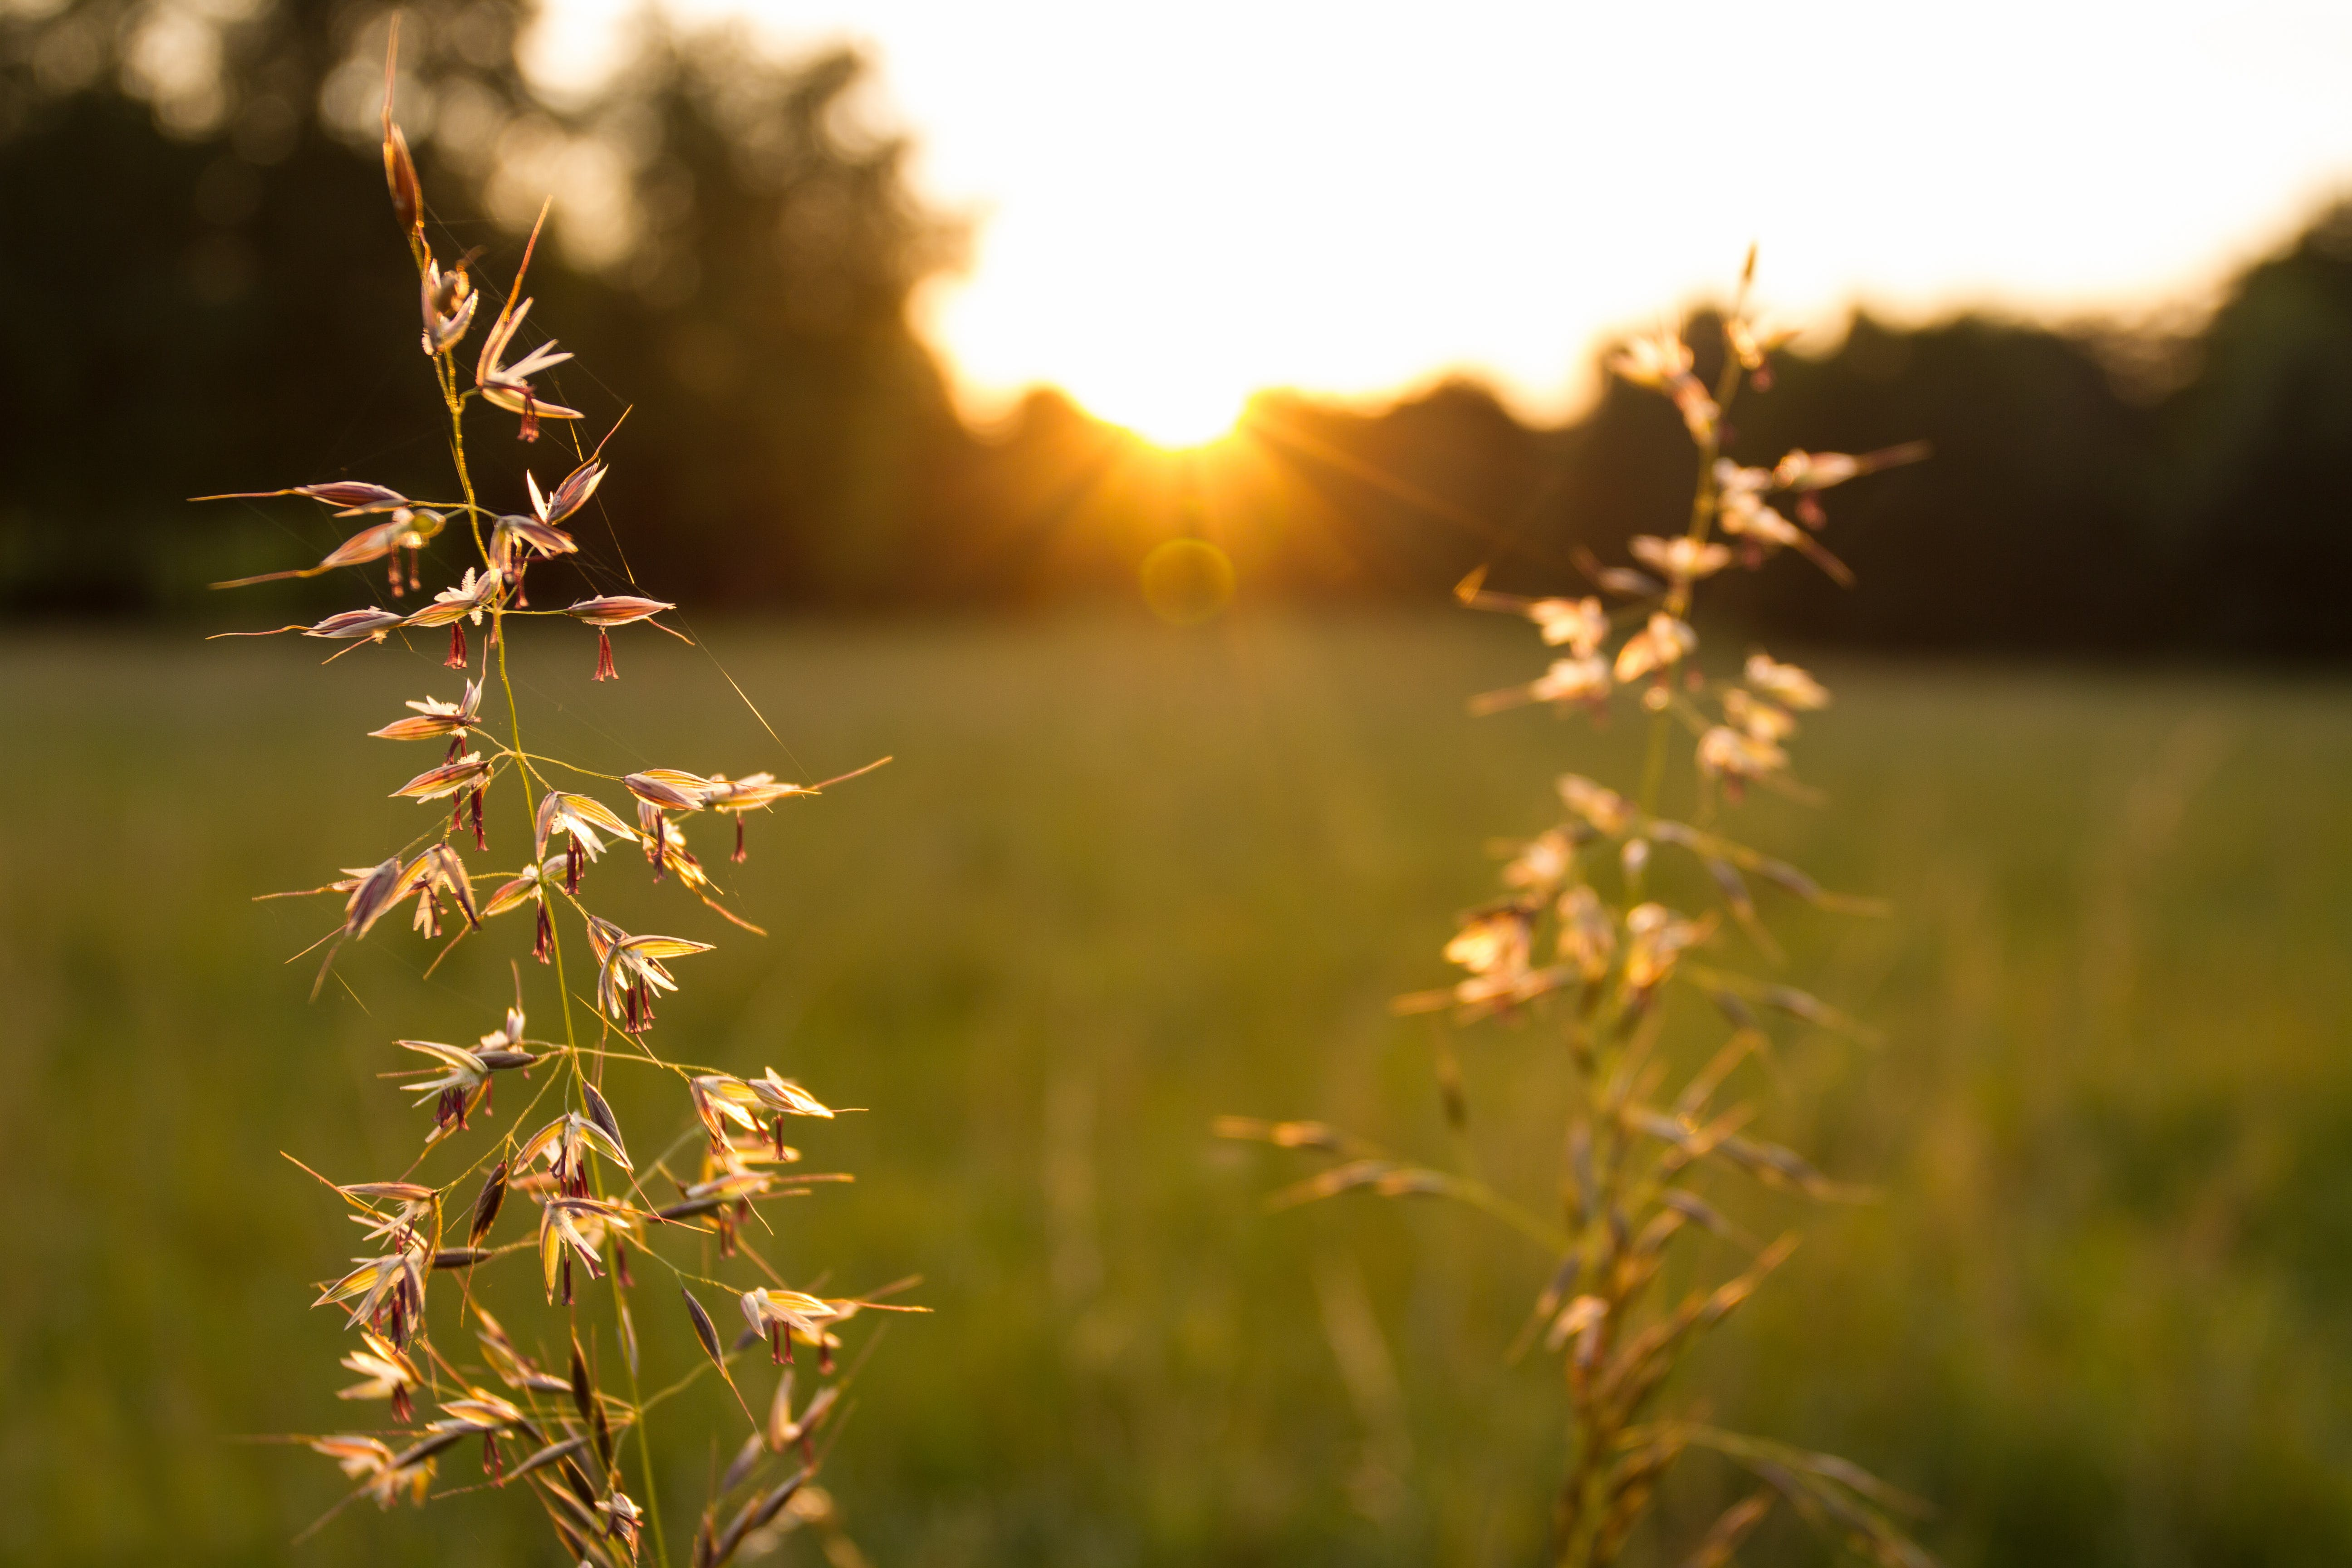 Free stock photo of abendstimmung, close-up view, evening sun, evening-sky